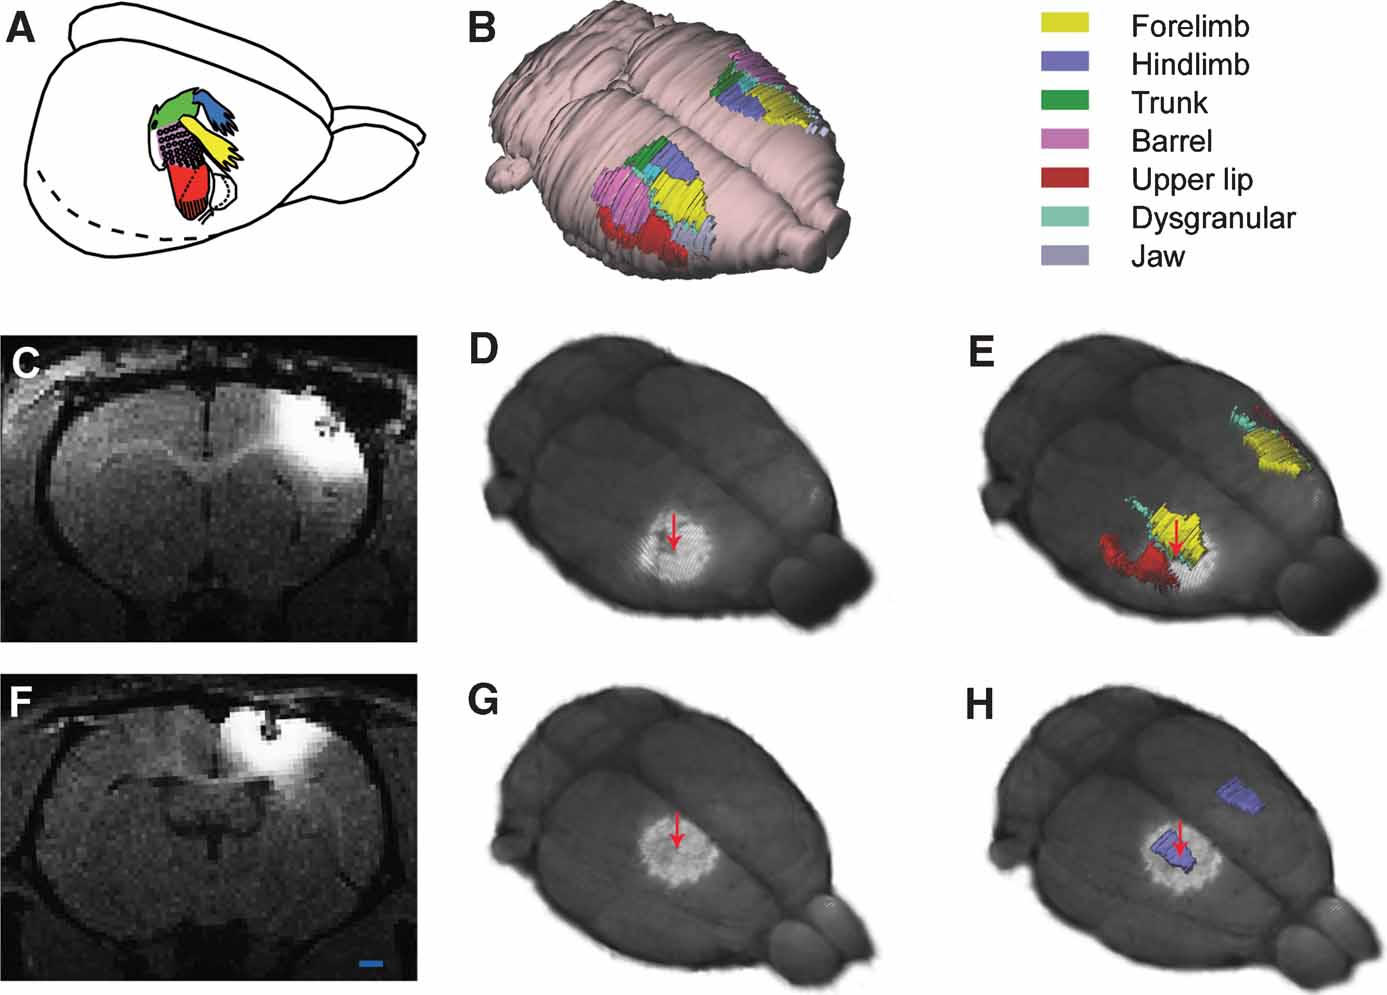 Frontiers Three Dimensional Atlas System For Mouse And